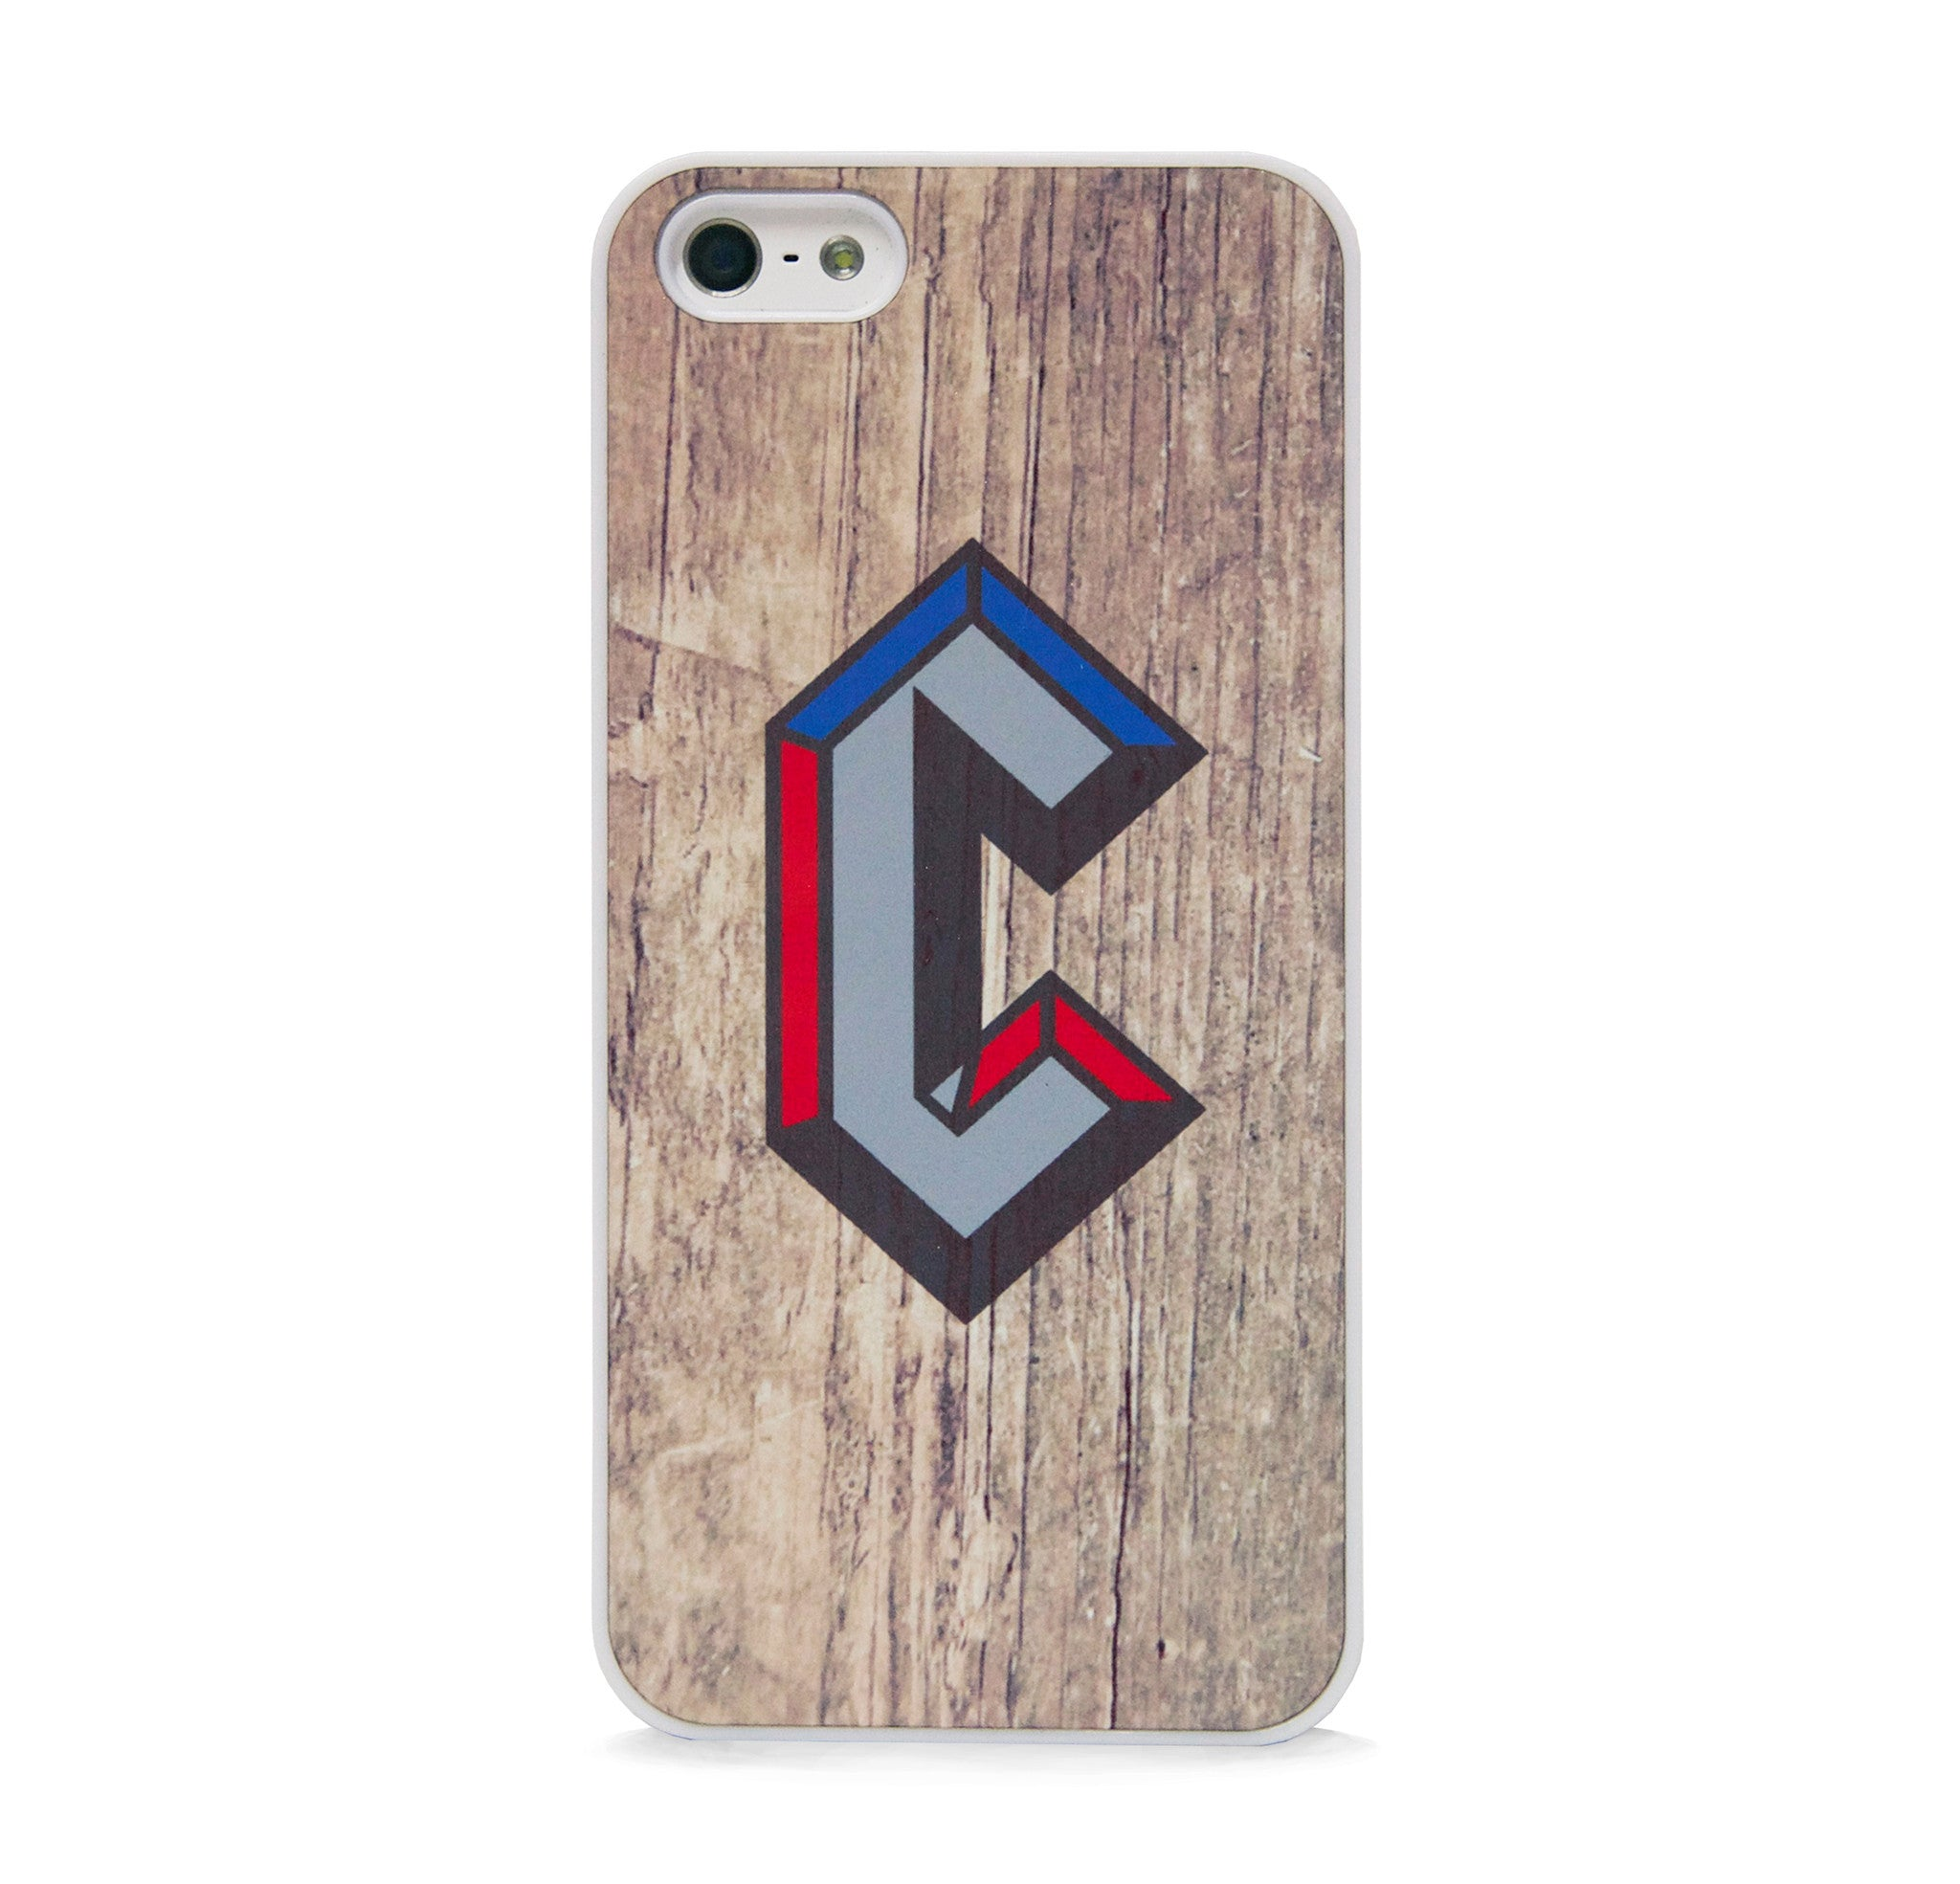 INITIAL C FOR IPHONE 5/5S, IPHONE SE